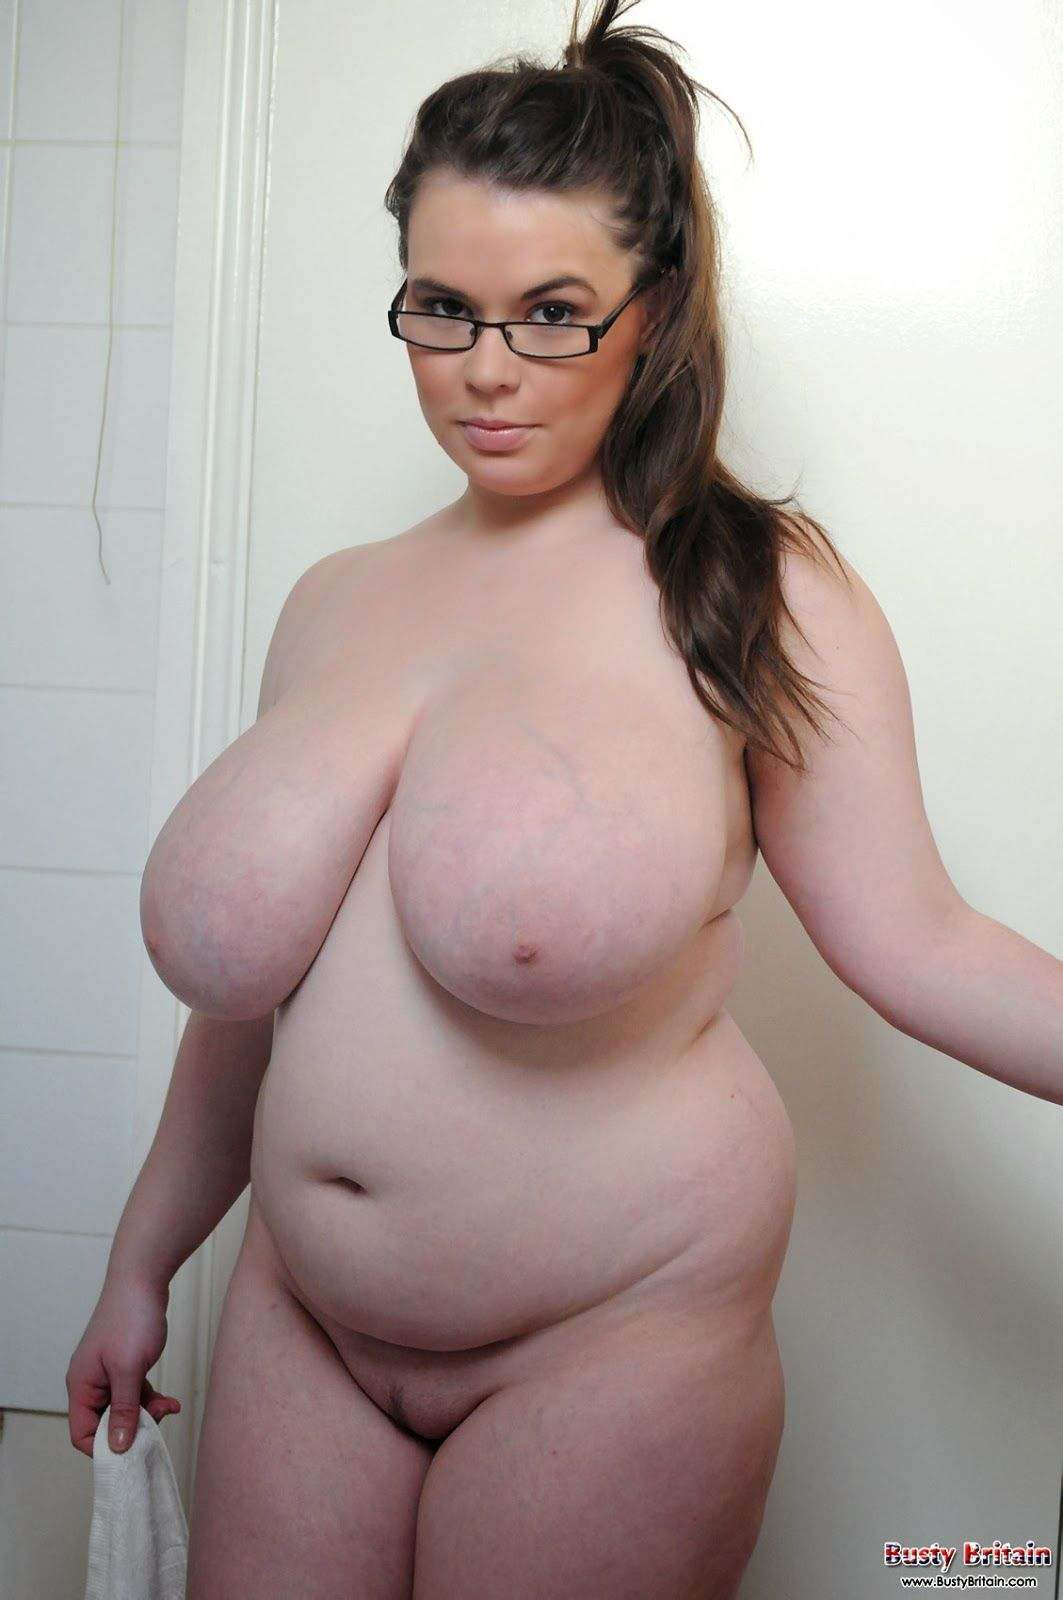 Nude Latin Bbw Classy 11 best bbw images on pinterest | chubby girl, beautiful curves